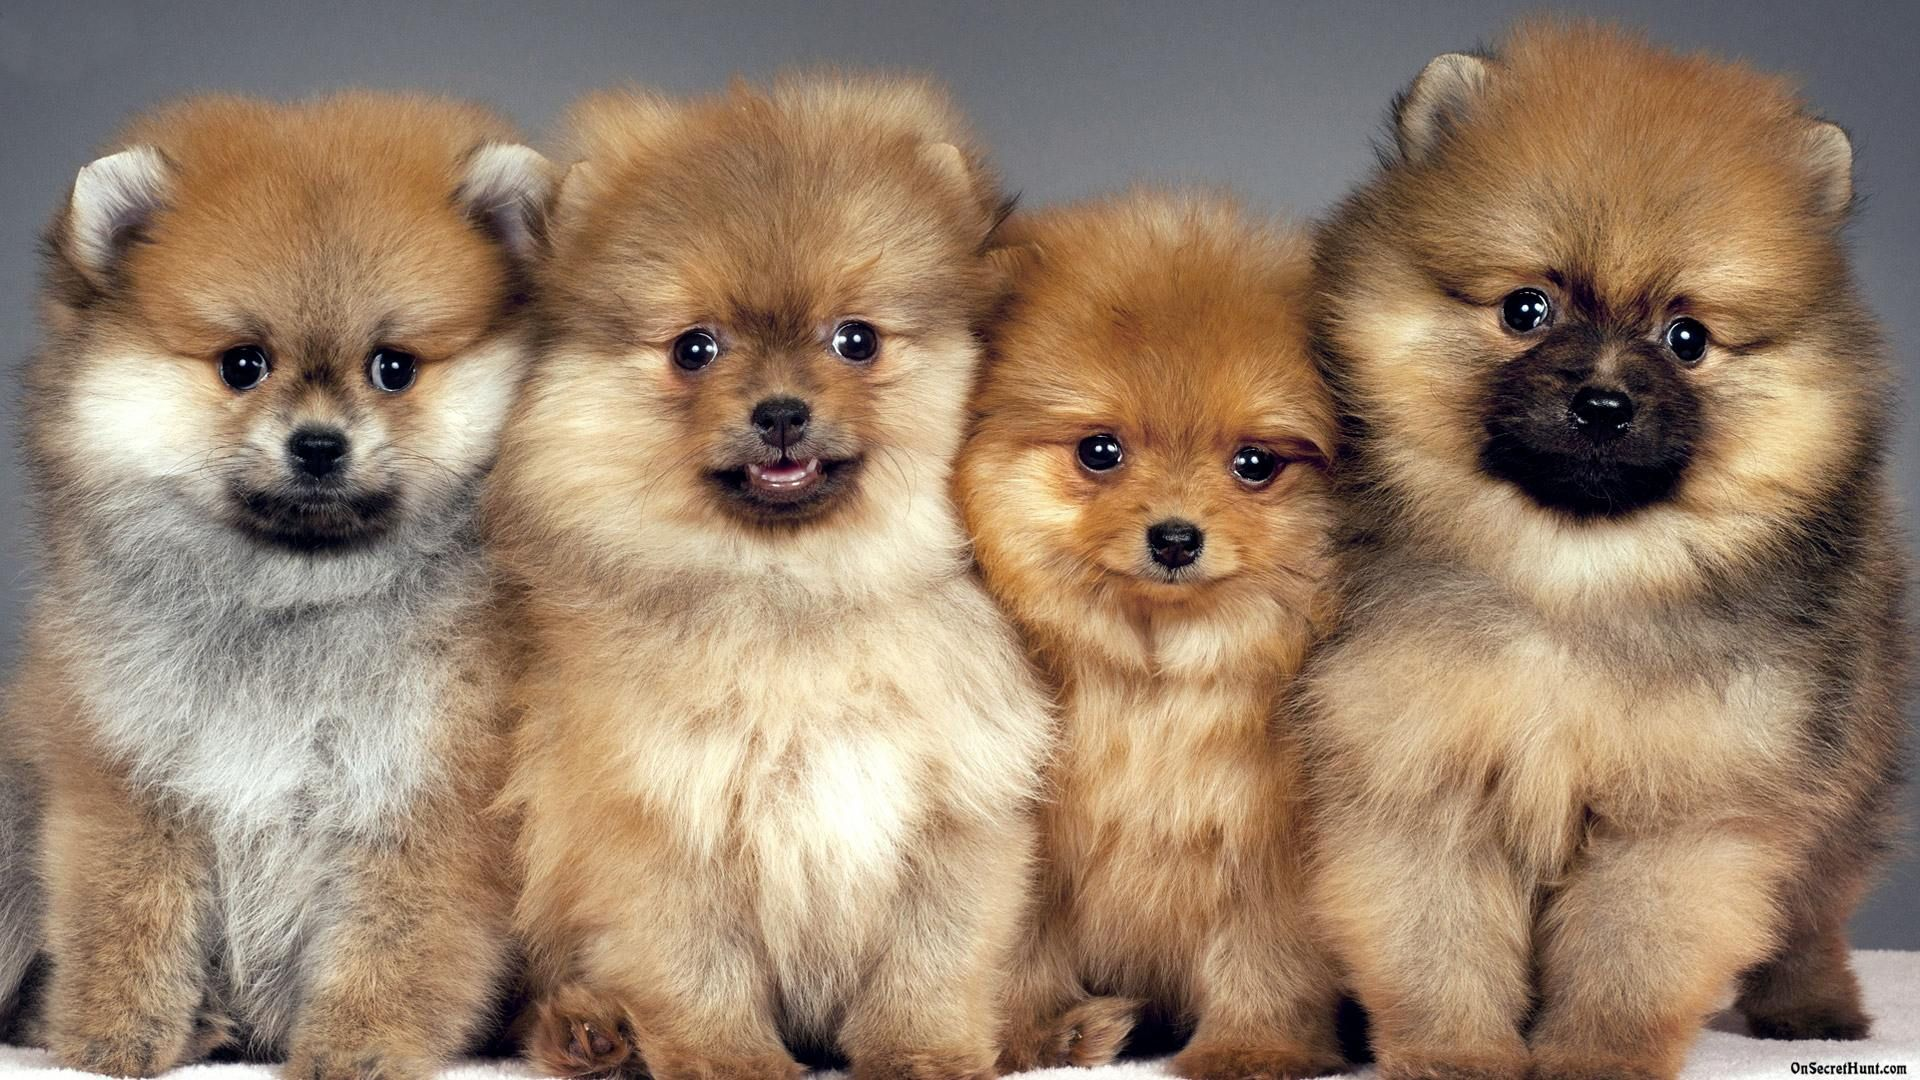 20 Puppy Pictures That Will Make Your Heart Melt So What Are You Waiting For Take A Look At These Adorab Cute Pomeranian Cute Dogs And Puppies Puppy Pictures